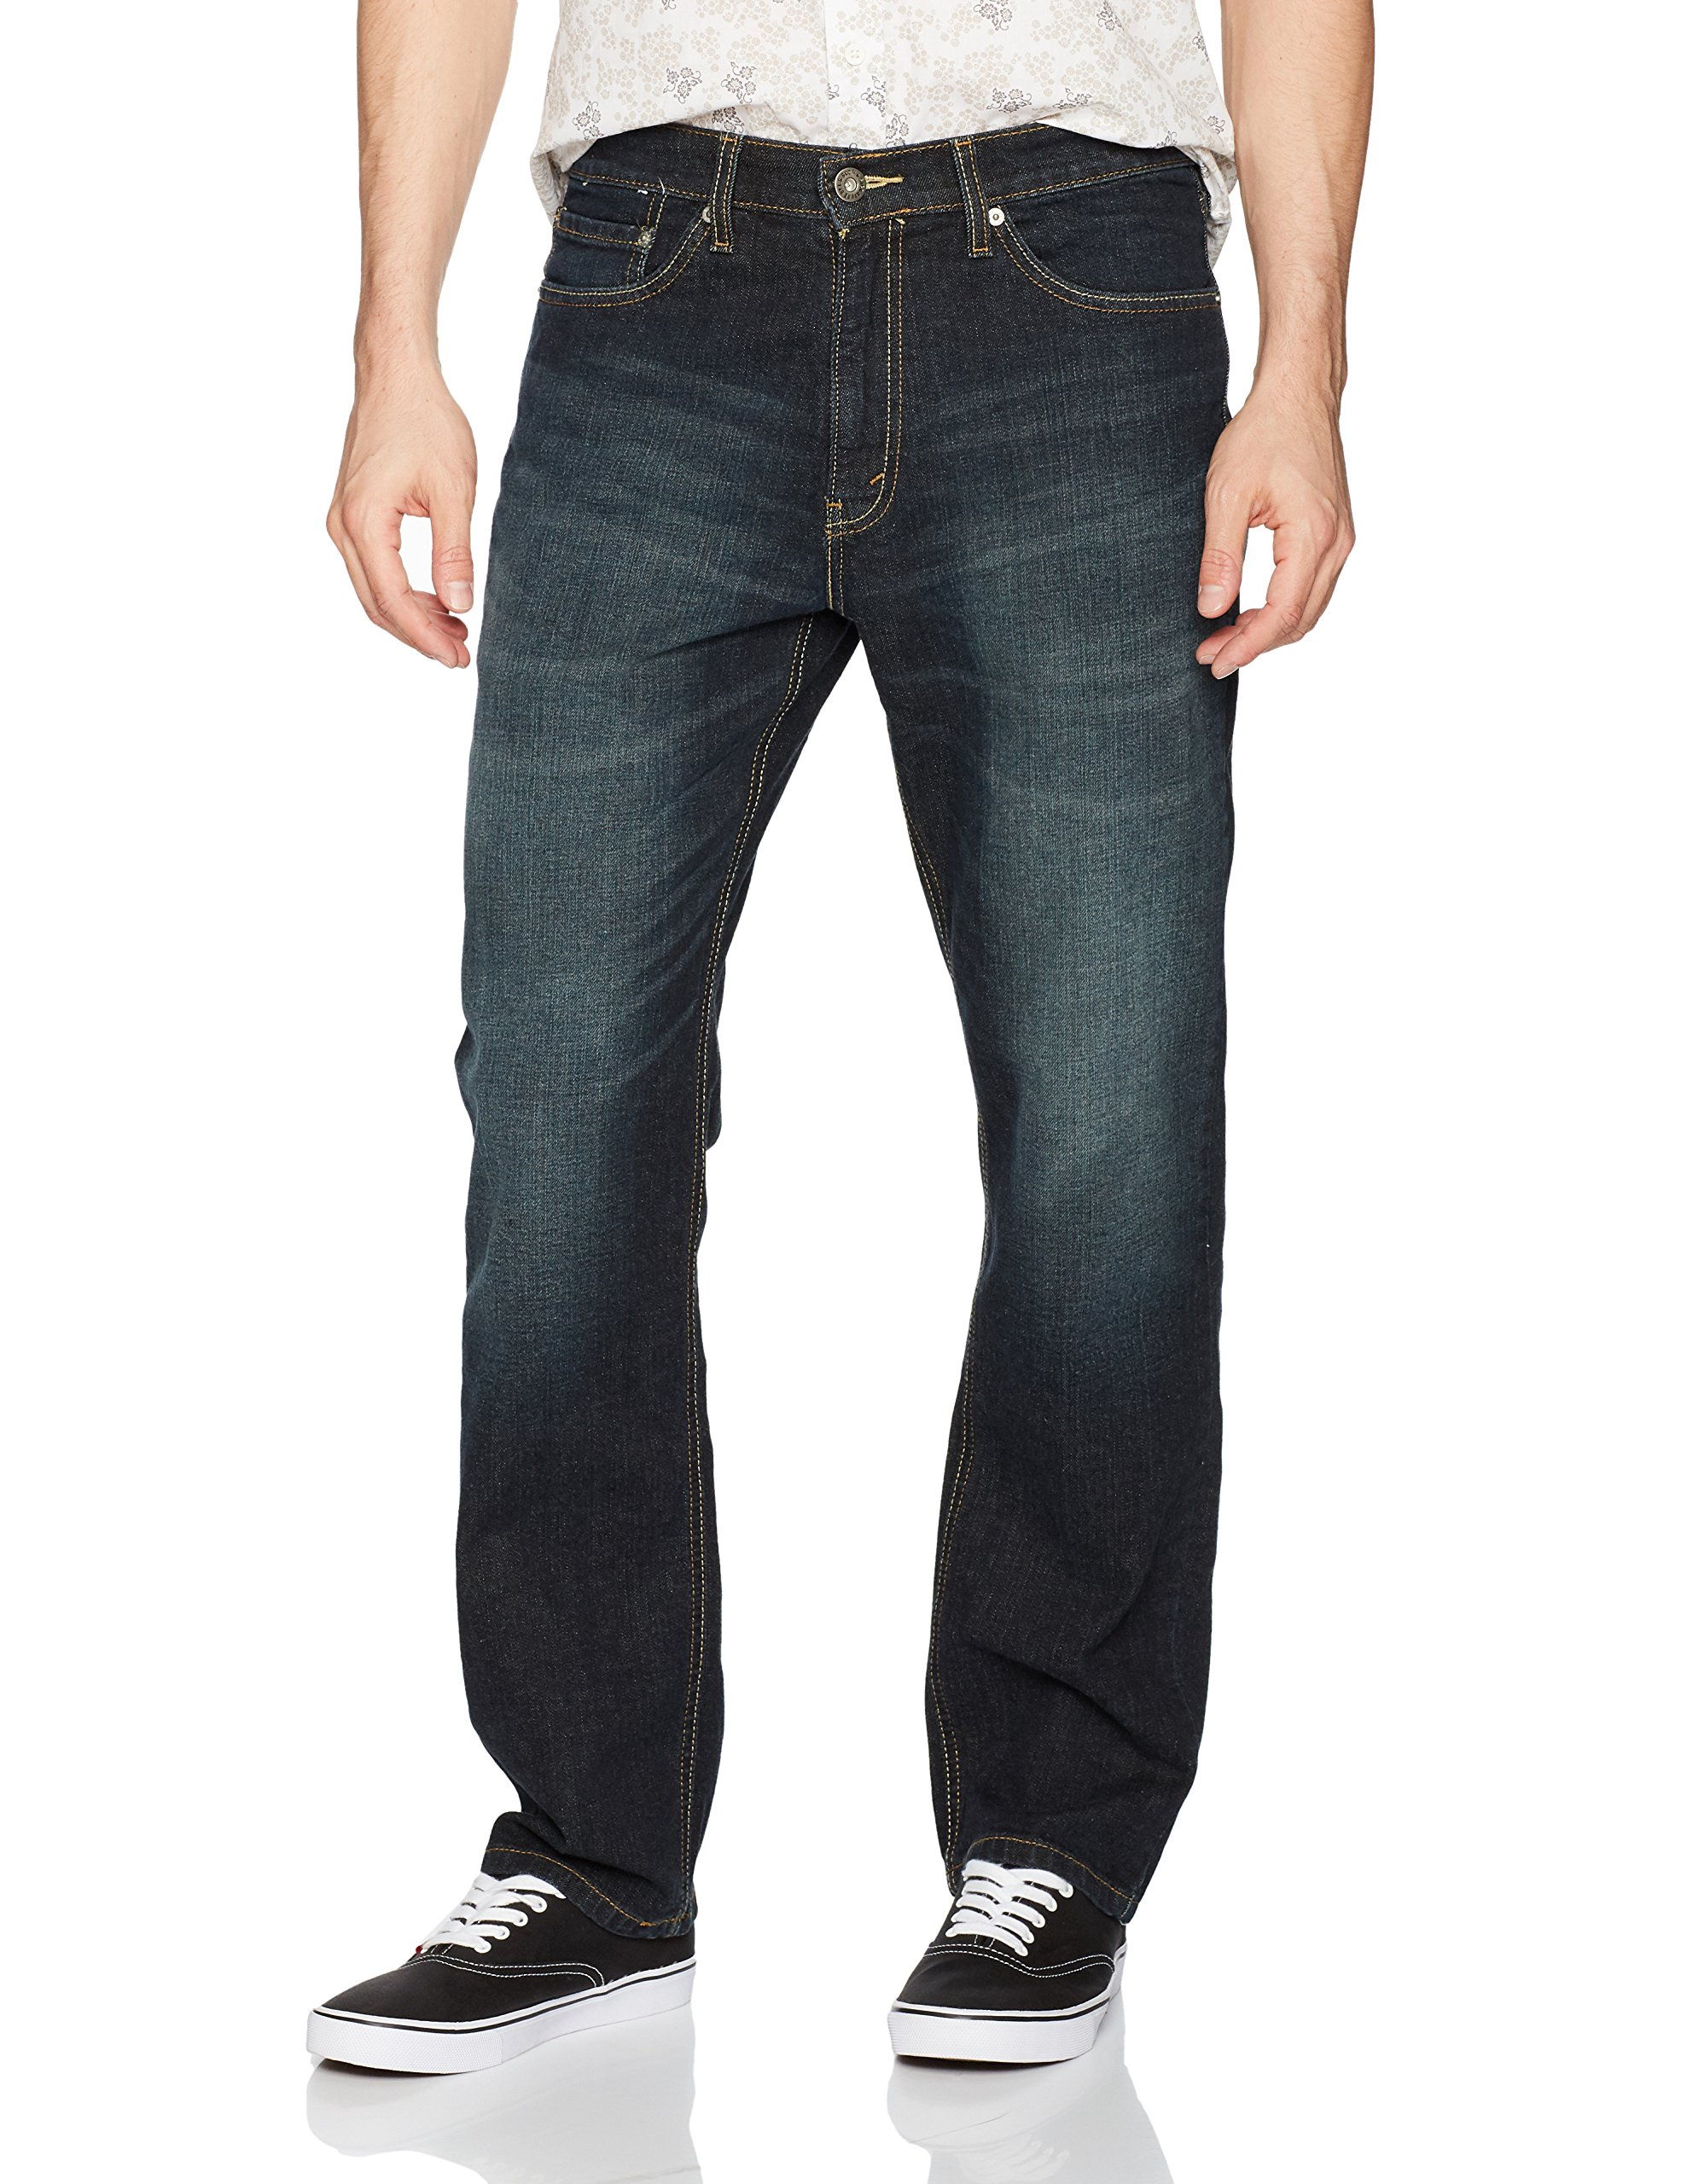 Signature by Levi Strauss & Co. Gold Label Men's Athletic Fit Jeans, Pittsburgh, 42W x 30L